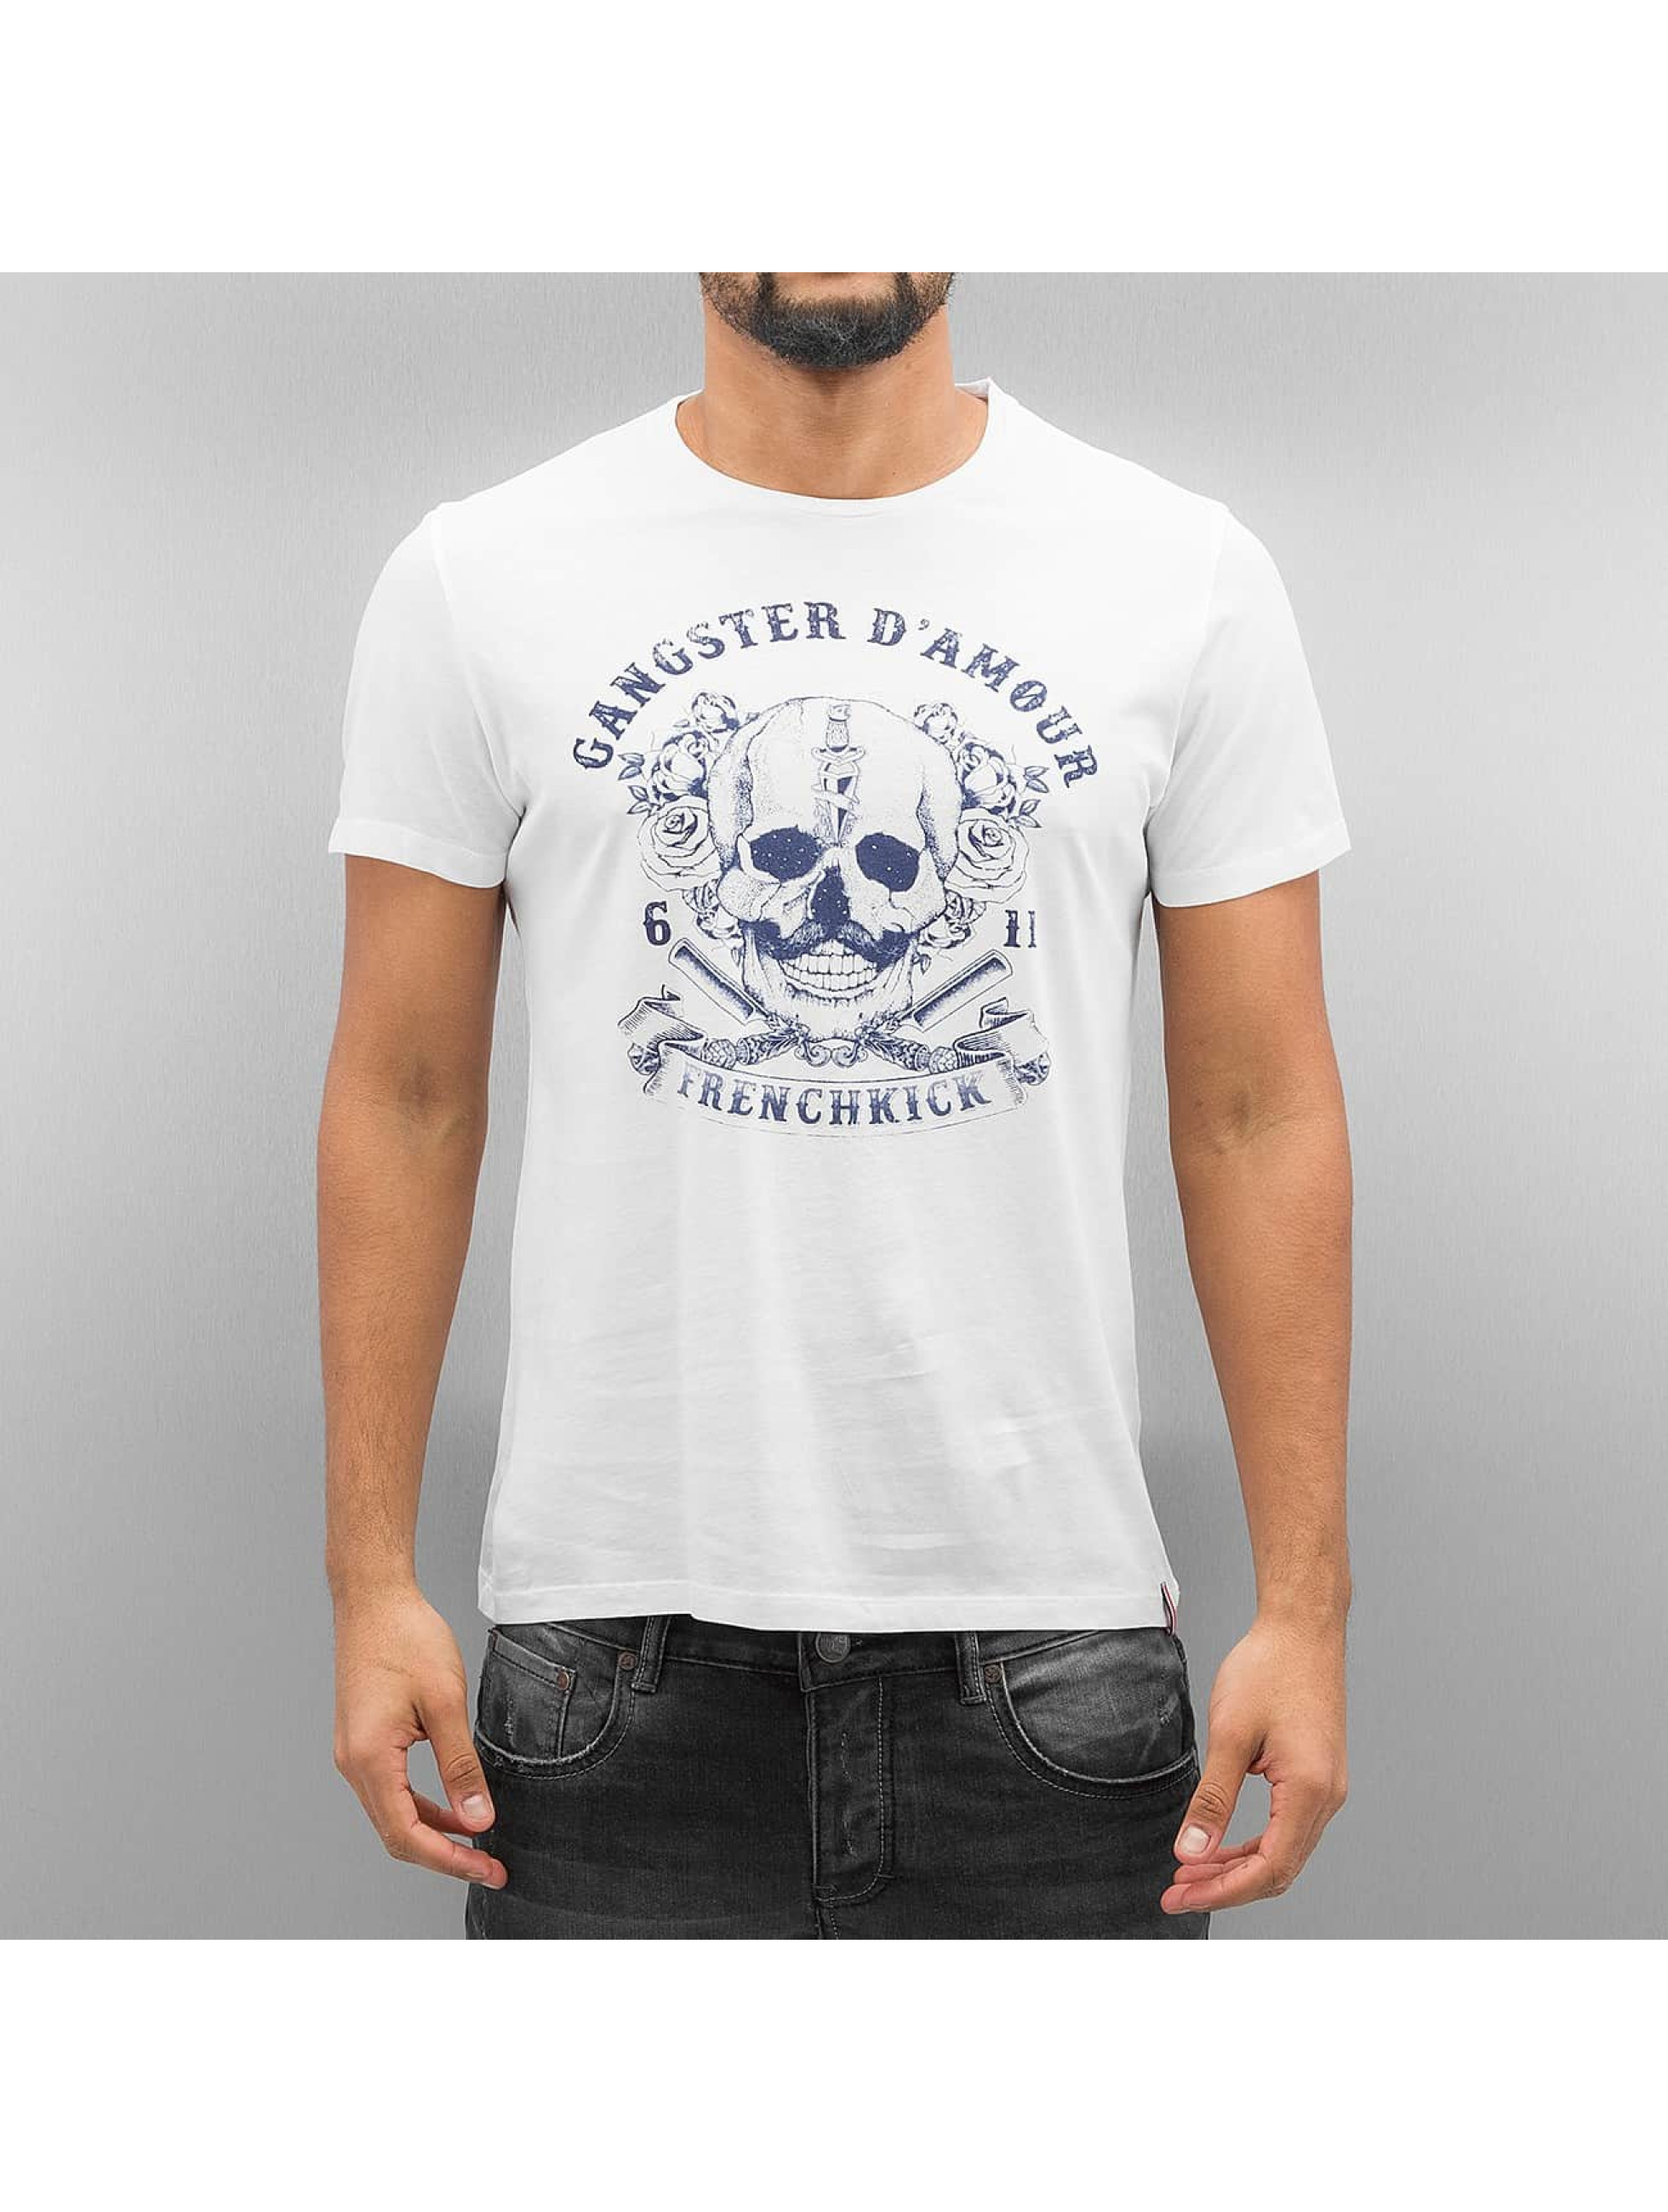 French Kick T-Shirt Amphitryon white